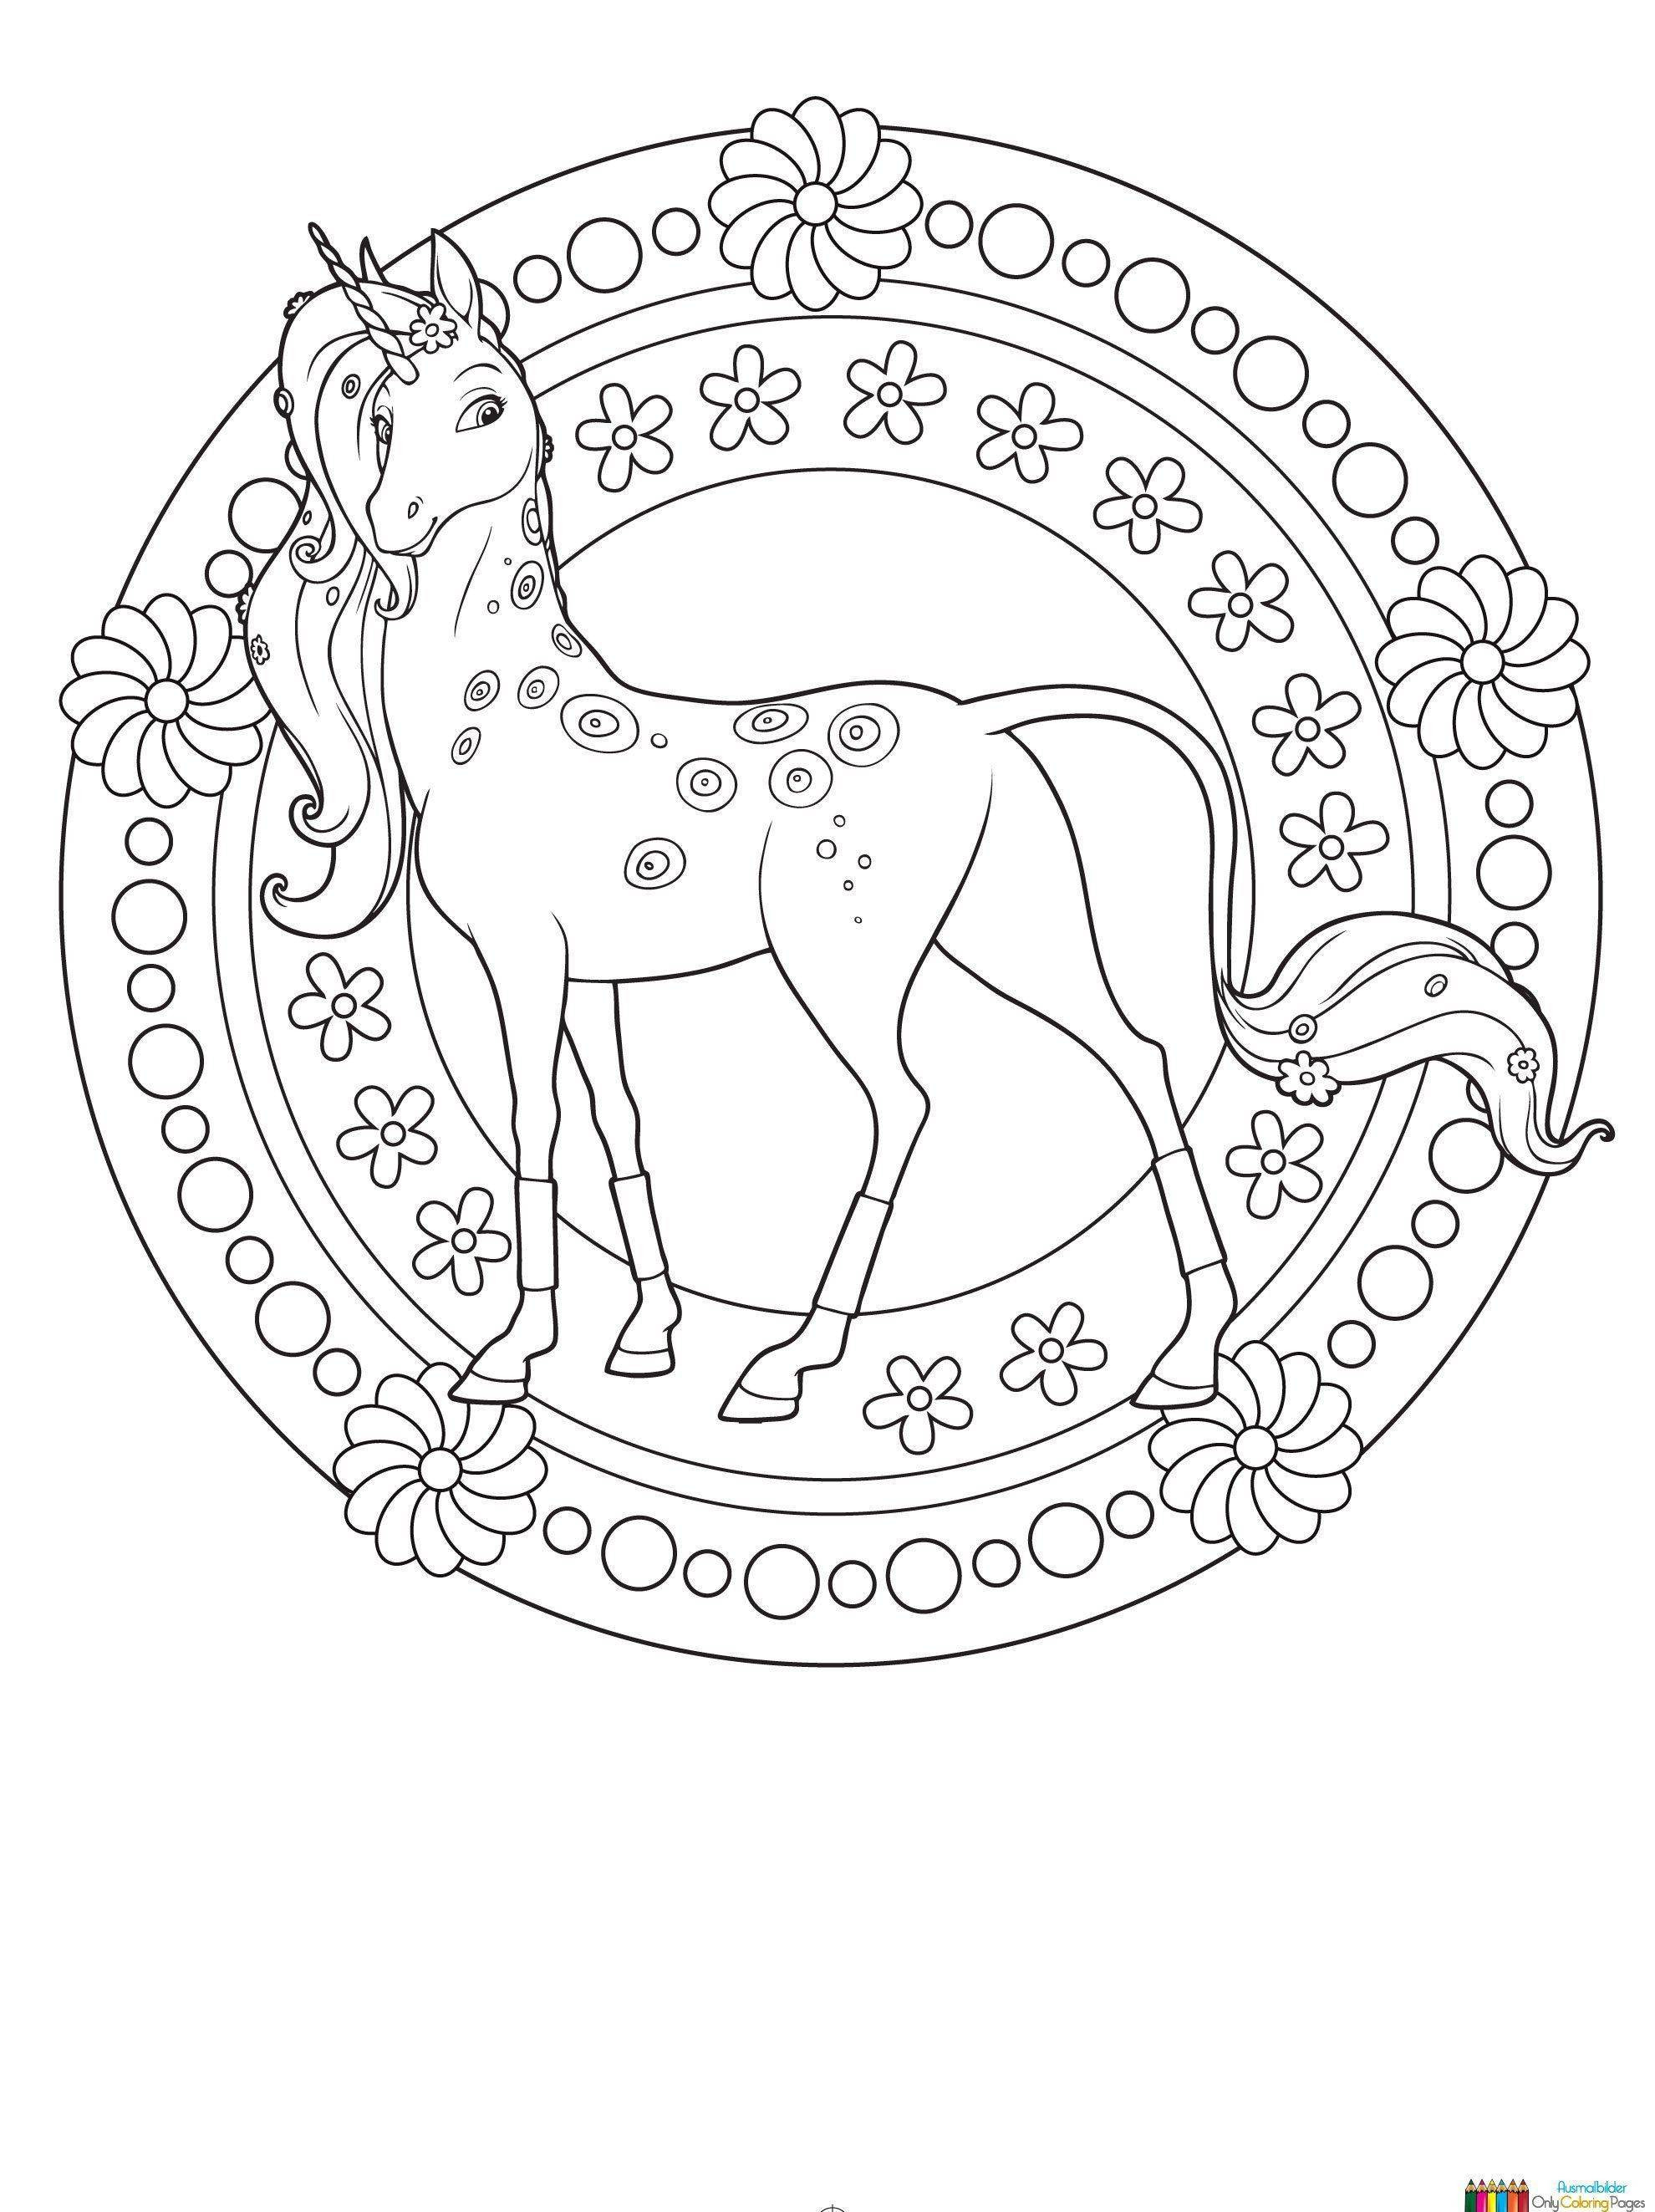 Ausmalbilder Disney Gratis Genial Awesome Disney Horse Coloring Pages Bilder